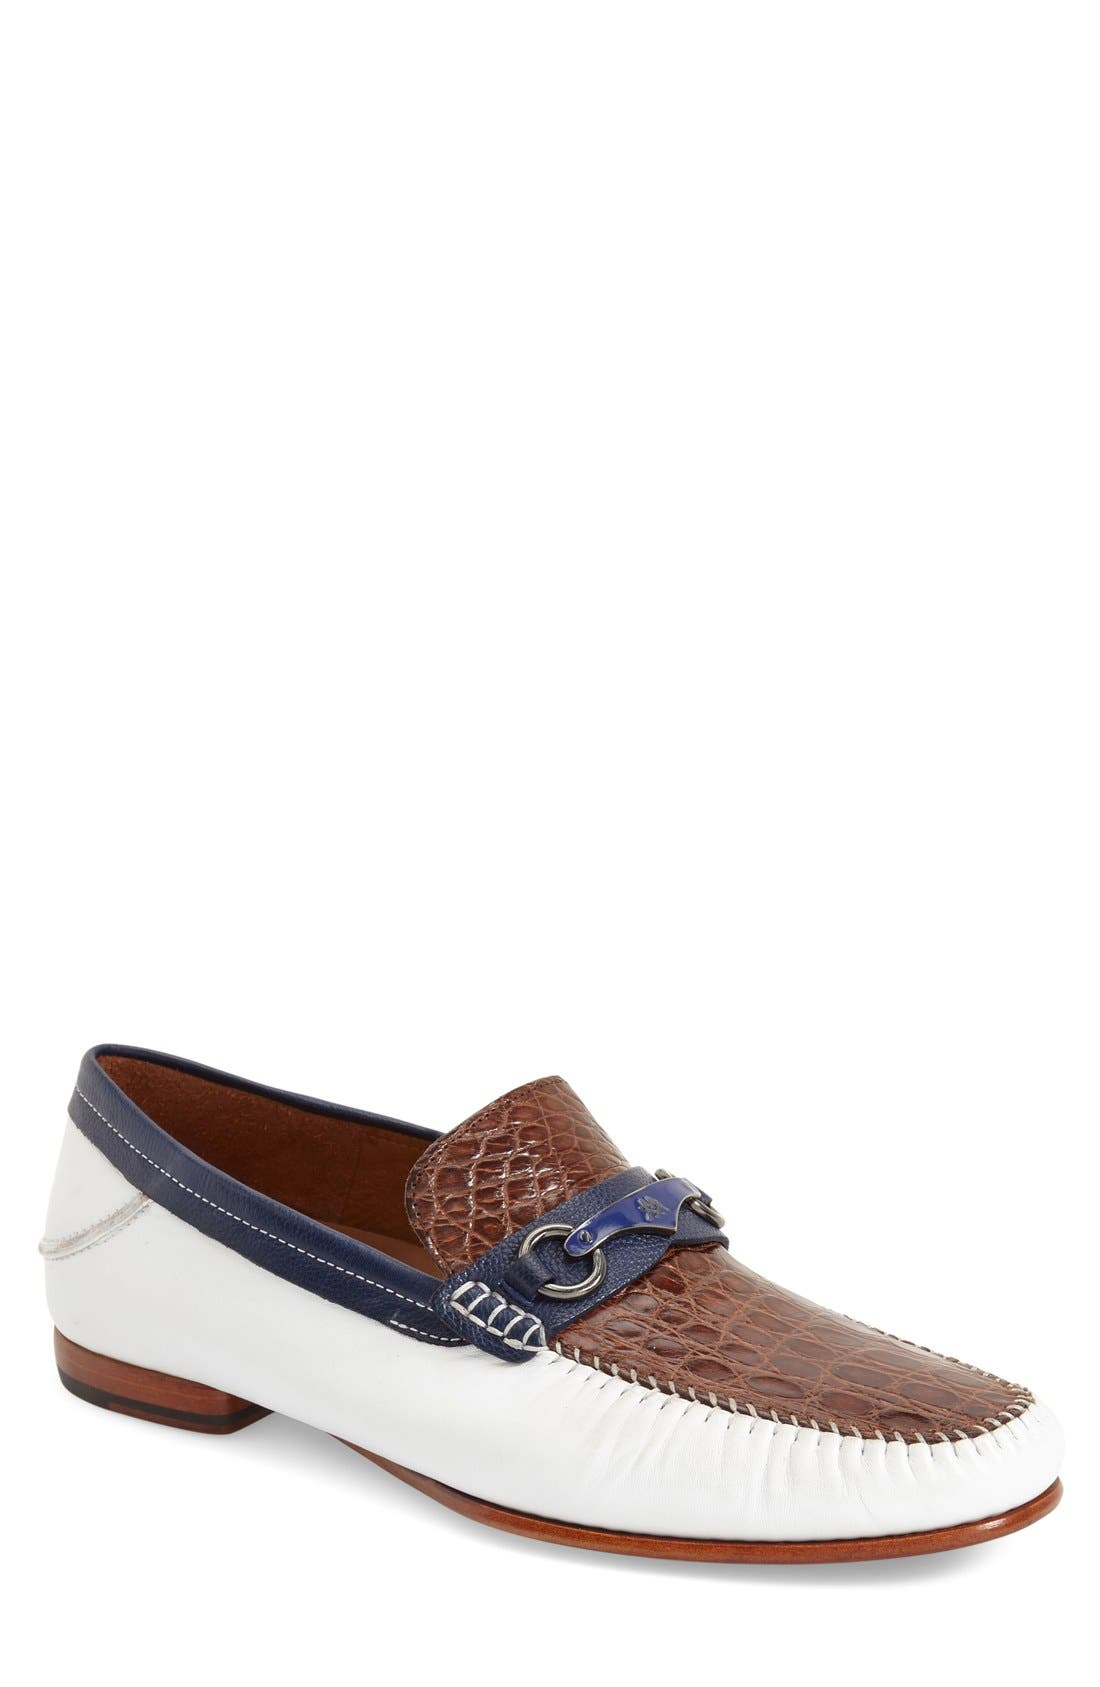 Main Image - Mezlan 'Gaudi Venetian' Genuine Crocodile Bit Loafer (Men)